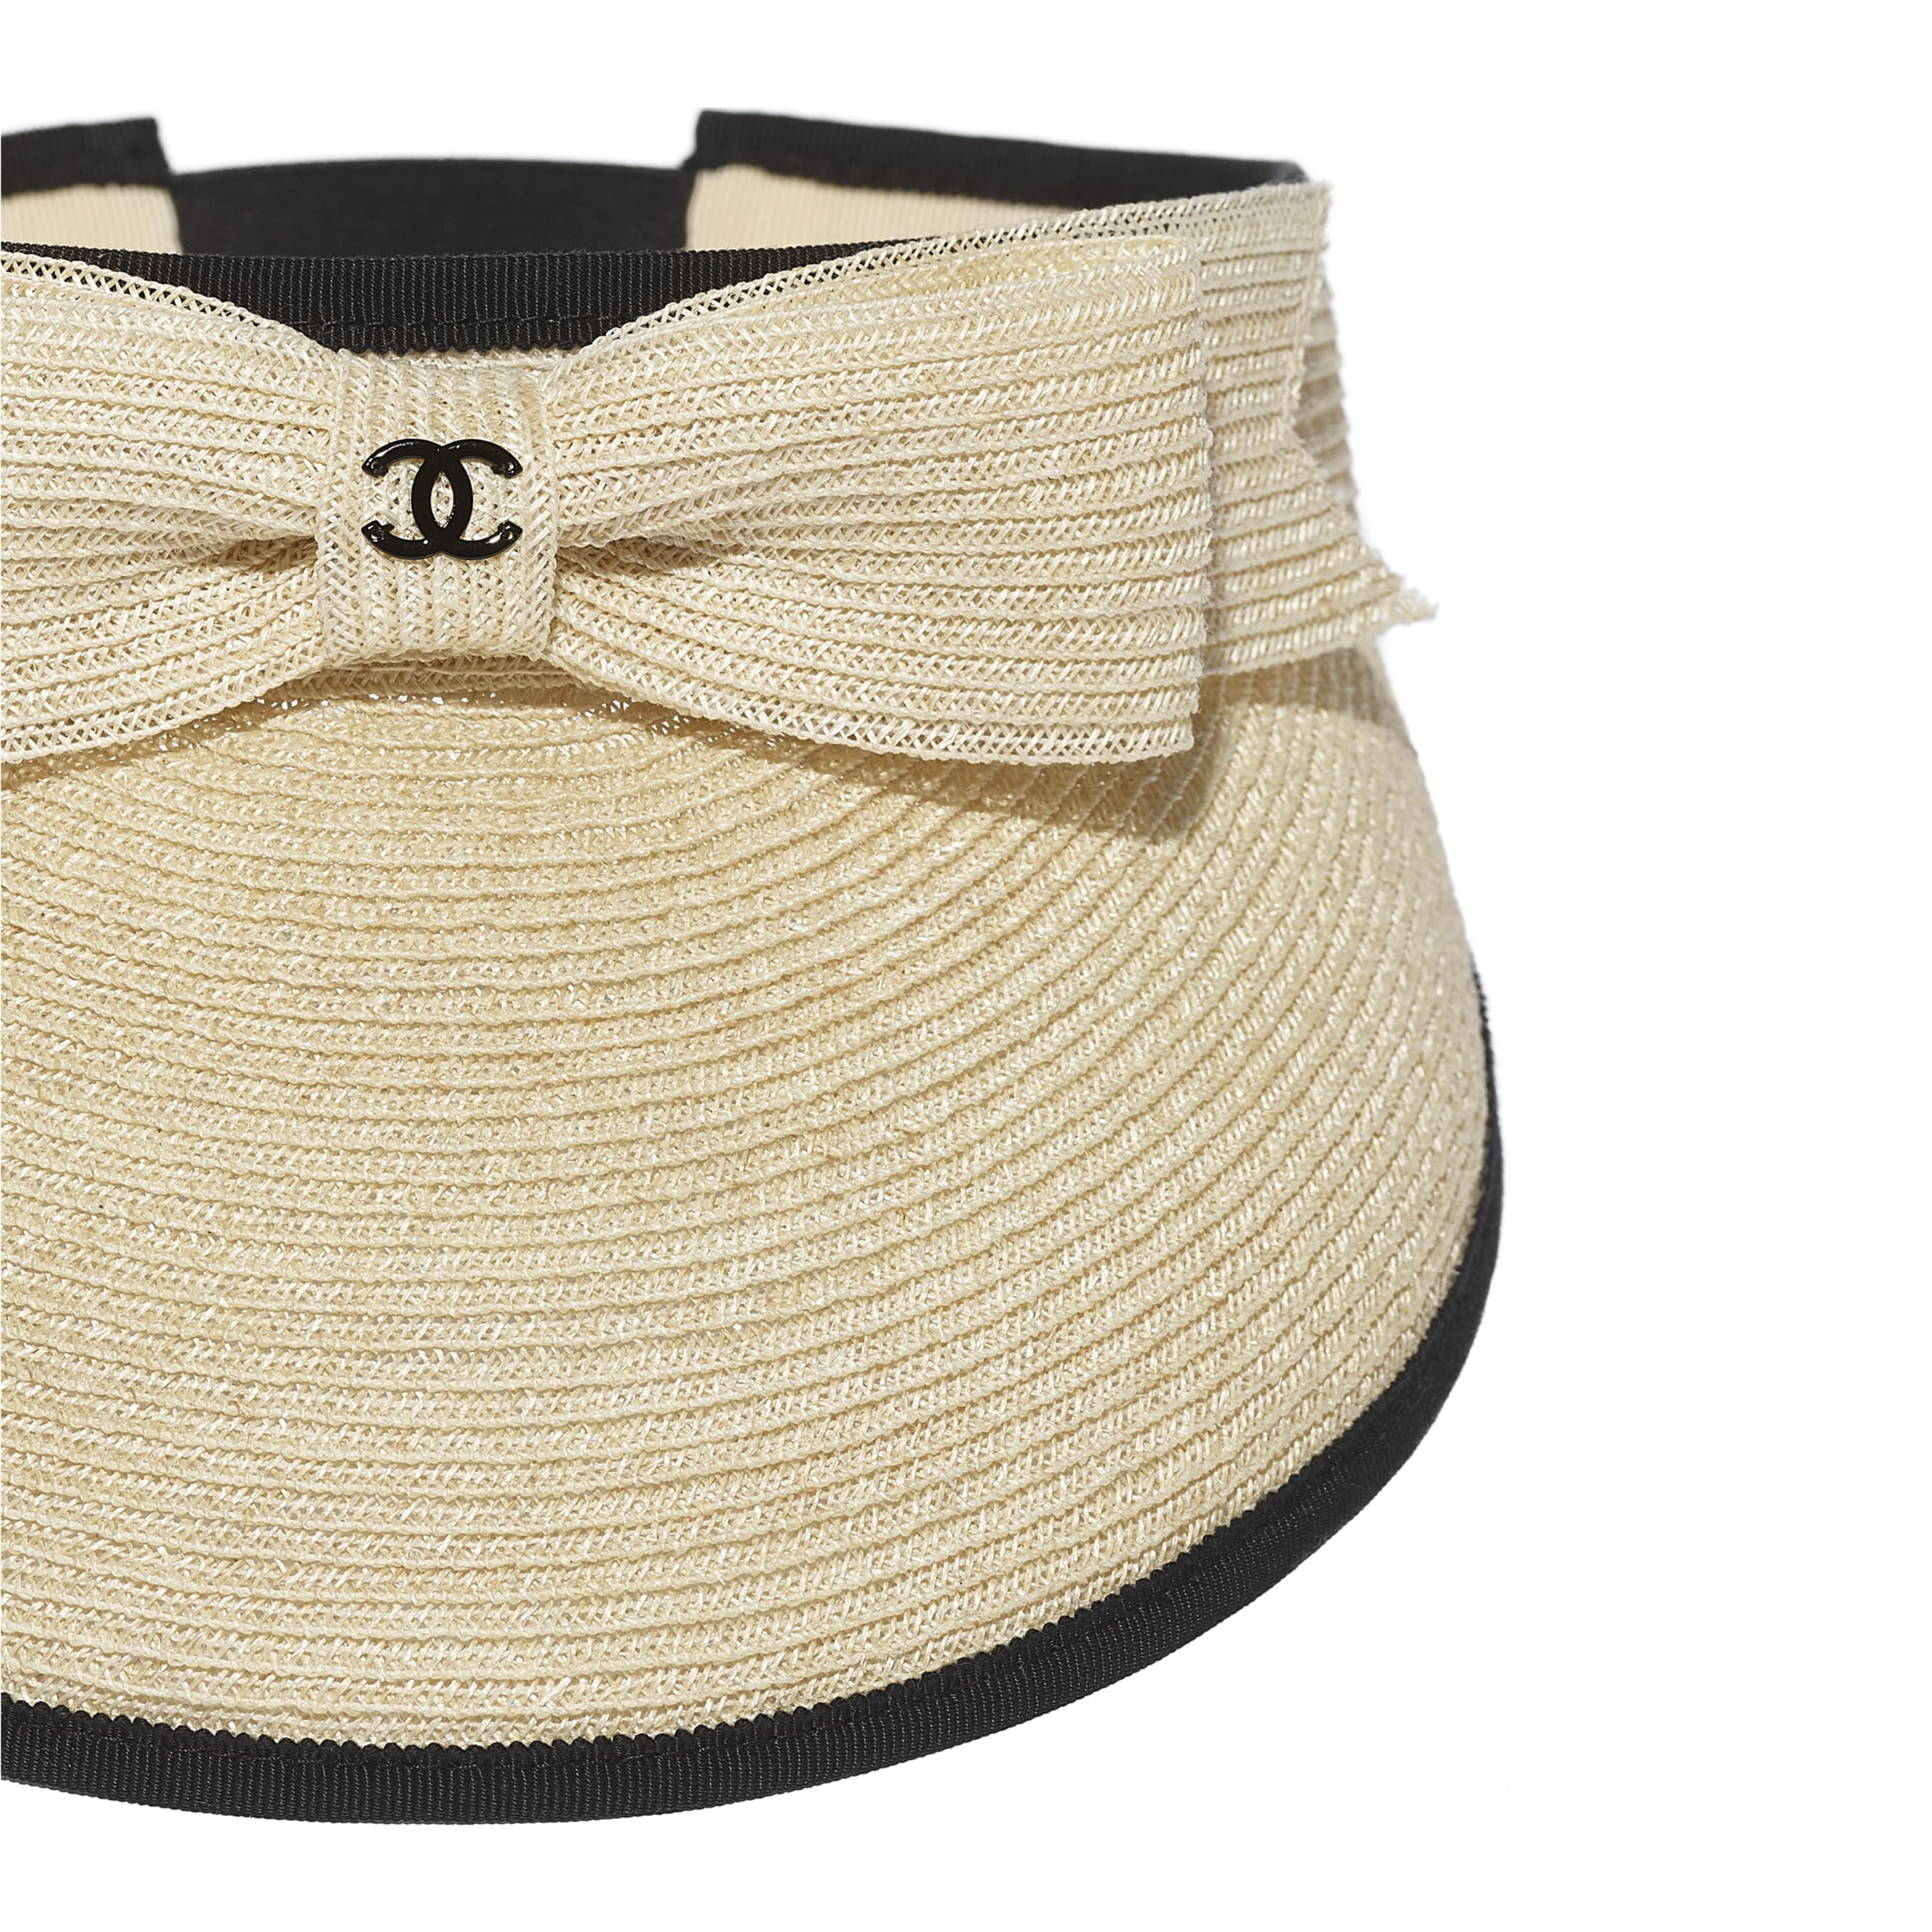 Visor - Beige & Black - Straw & Grosgrain - CHANEL - Alternative view - see standard sized version